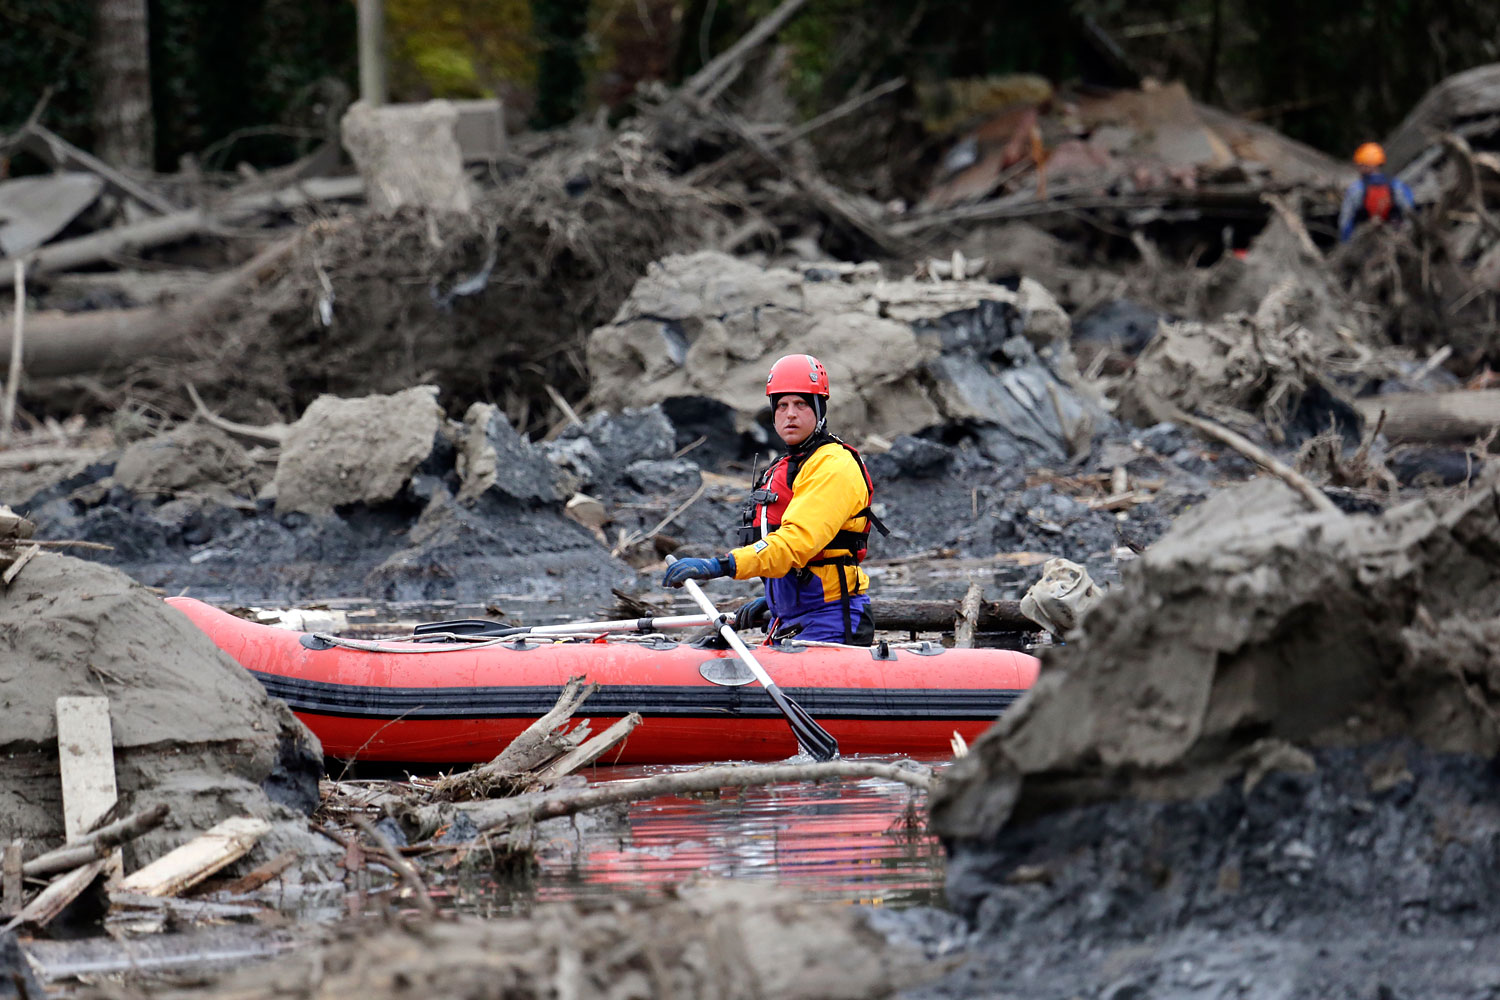 A searcher uses a small boat to look through debris from a deadly mudslide, March 25, 2014, in Oso, Wash.